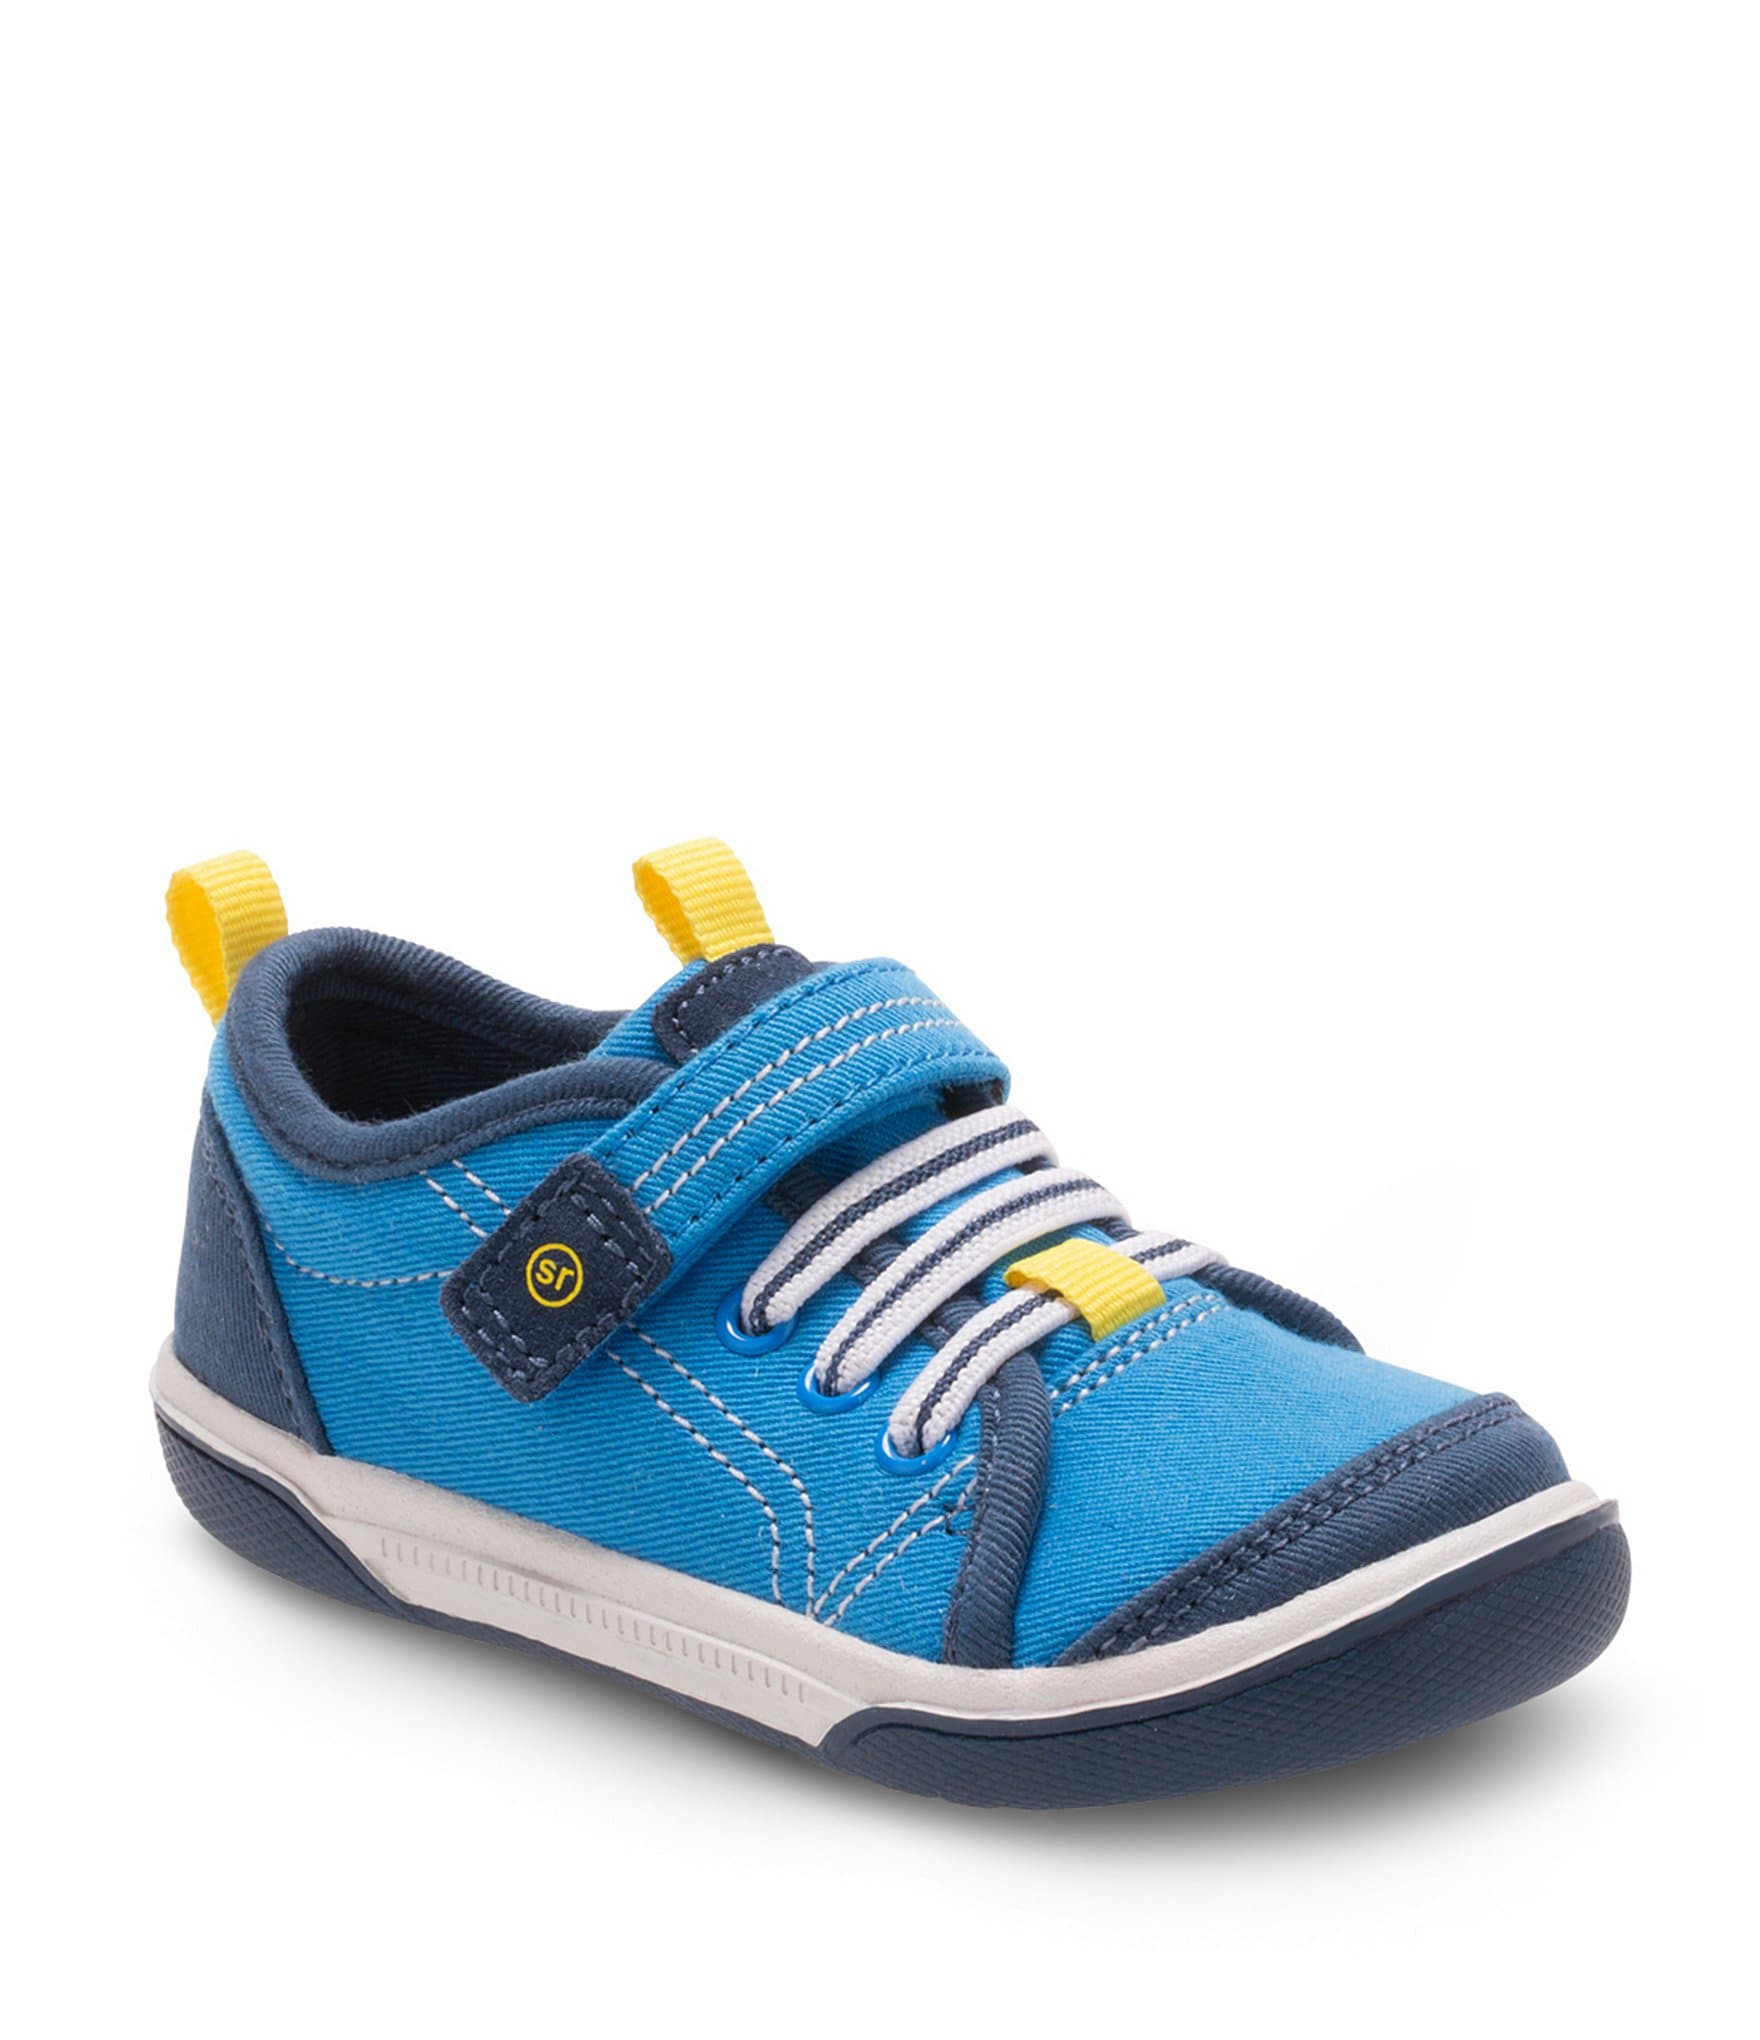 nike shoes for kids boys adidas shoes for kids boys blue